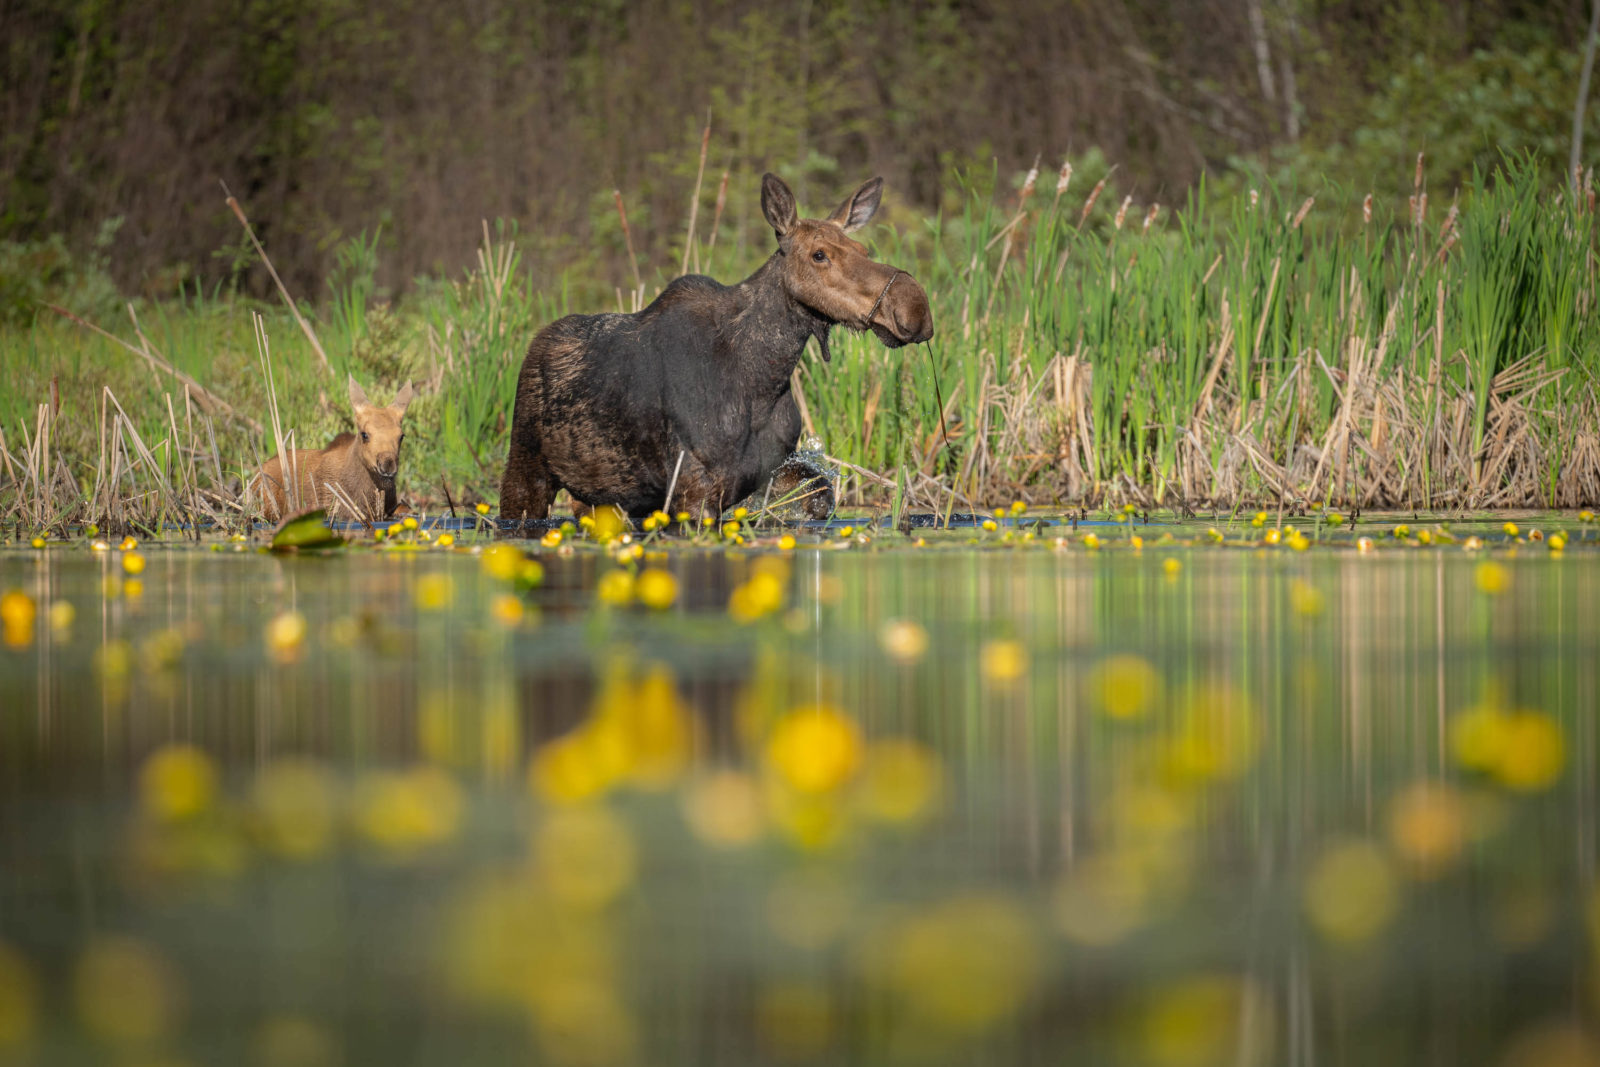 A cow moose wades through water with a calf.